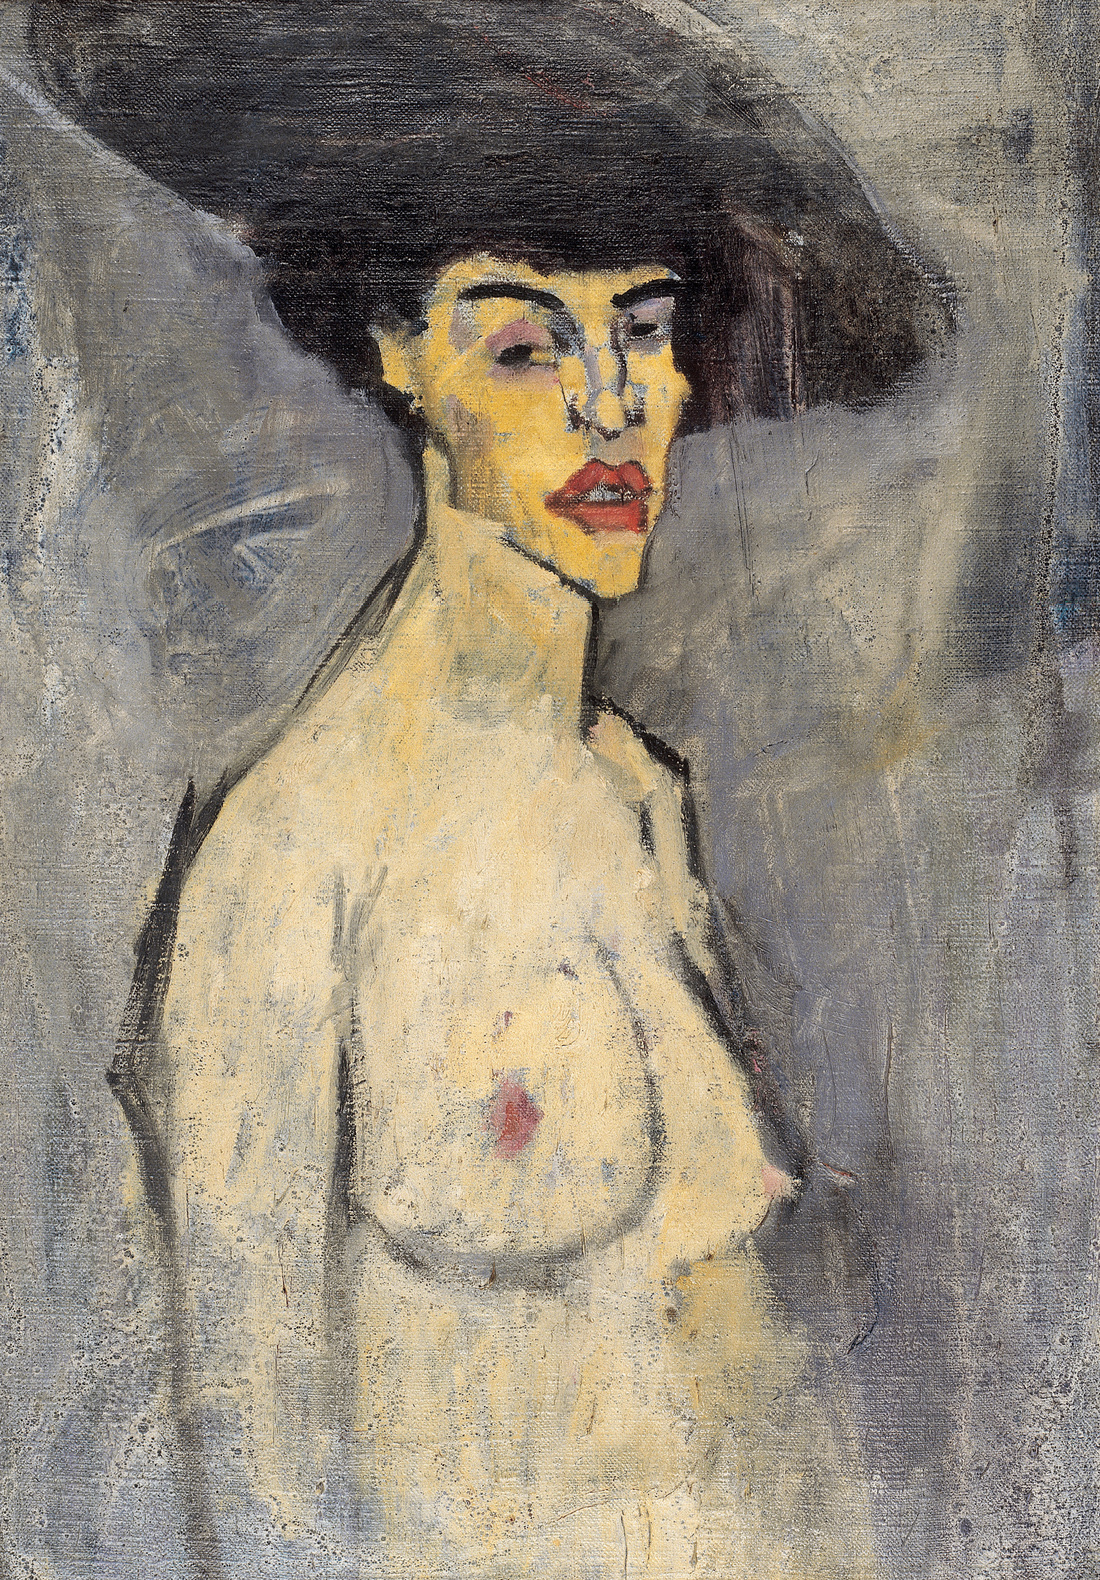 Amedeo Modigliani, Nude with a Hat, 1908. Courtesy of the Reuben and Edith Hecht Museum, University of Haifa, Israel and the Jewish Museum.